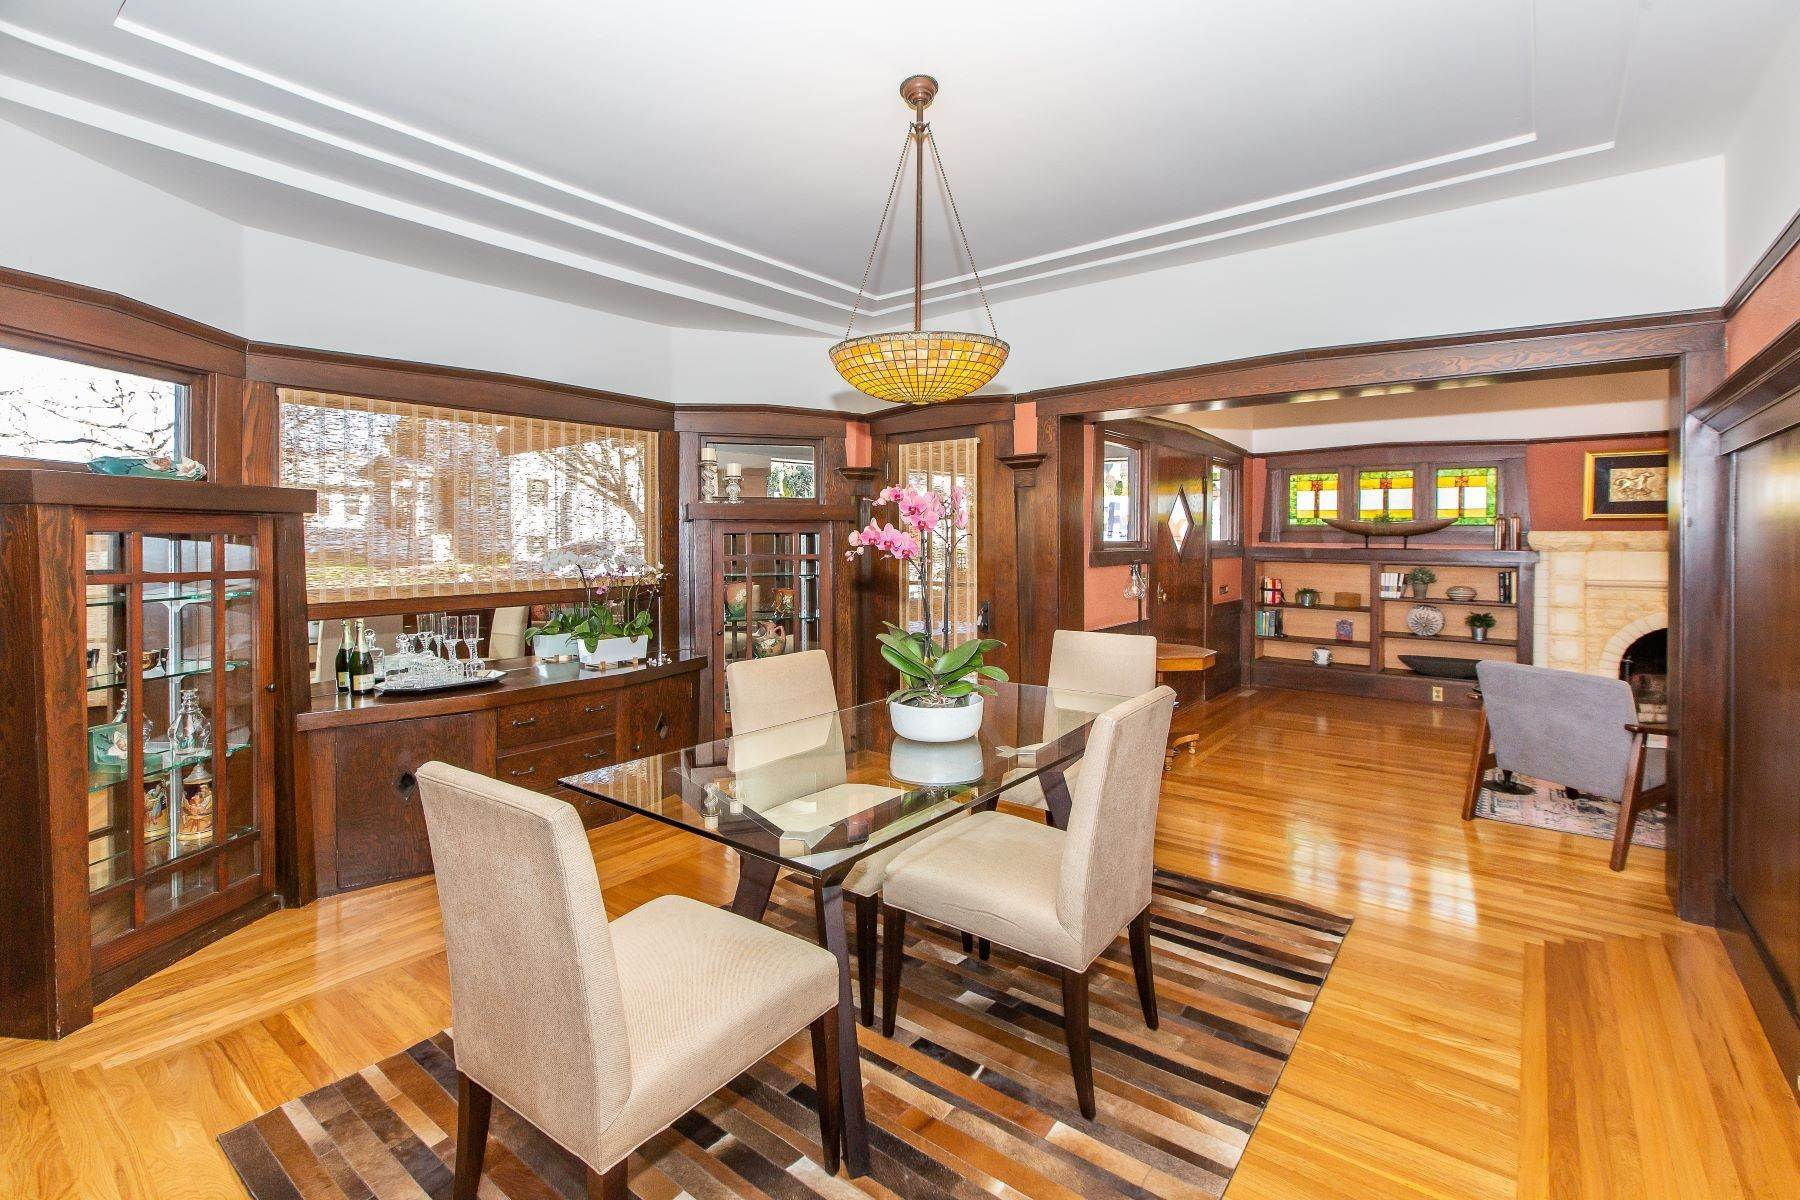 13. Single Family Homes for Sale at Glenview Arts & Crafts Treasure 3763 Woodruff Avenue Oakland, California 94602 United States